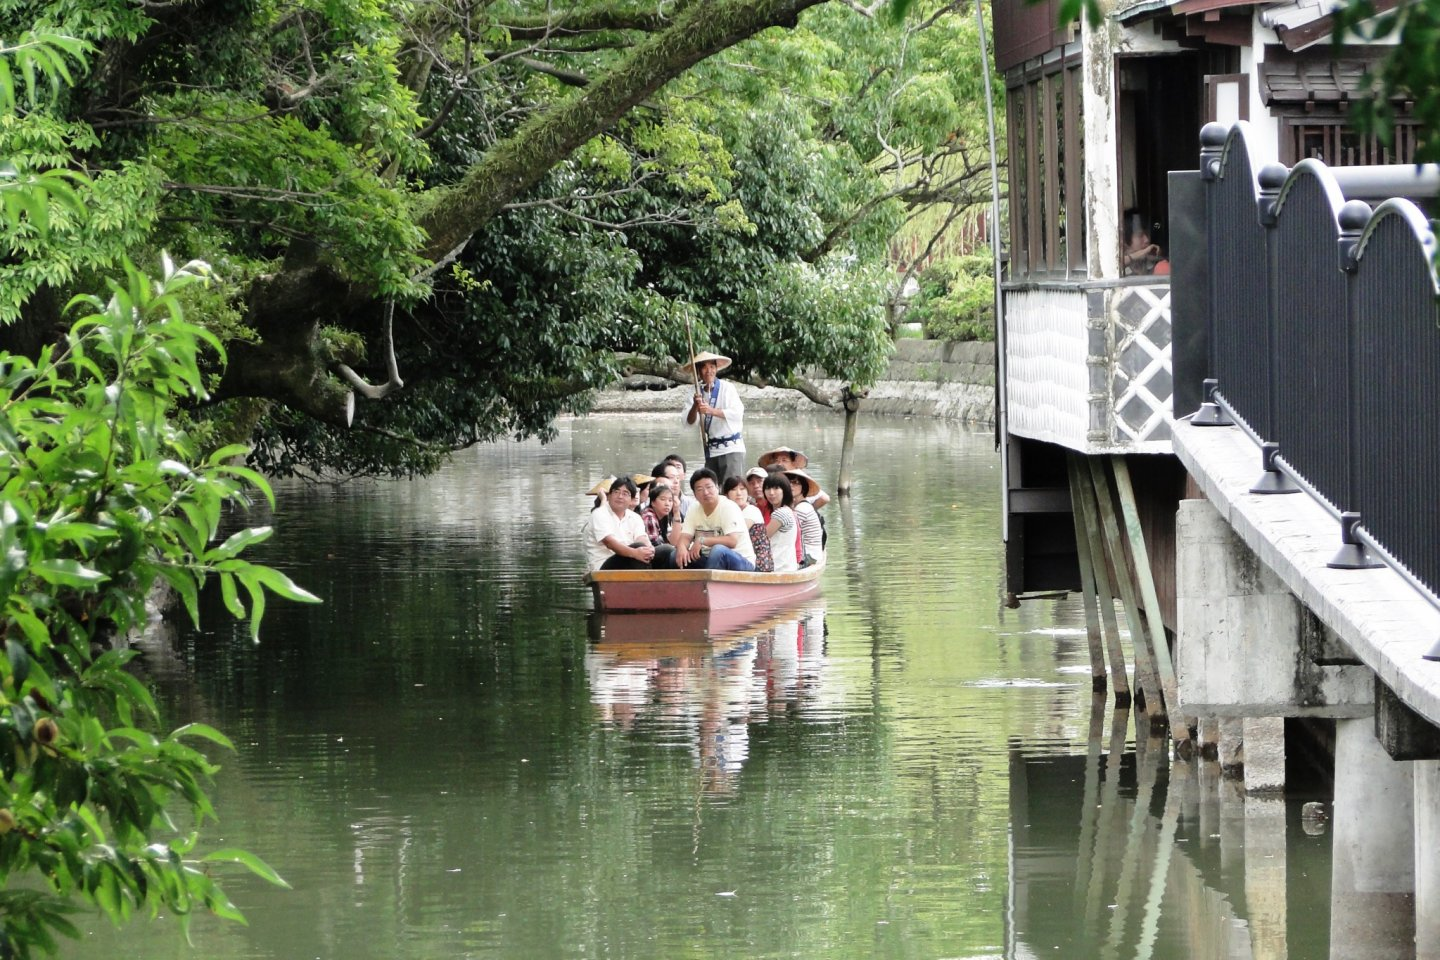 A boat full of visitors makes its way through Yanagawa's canals